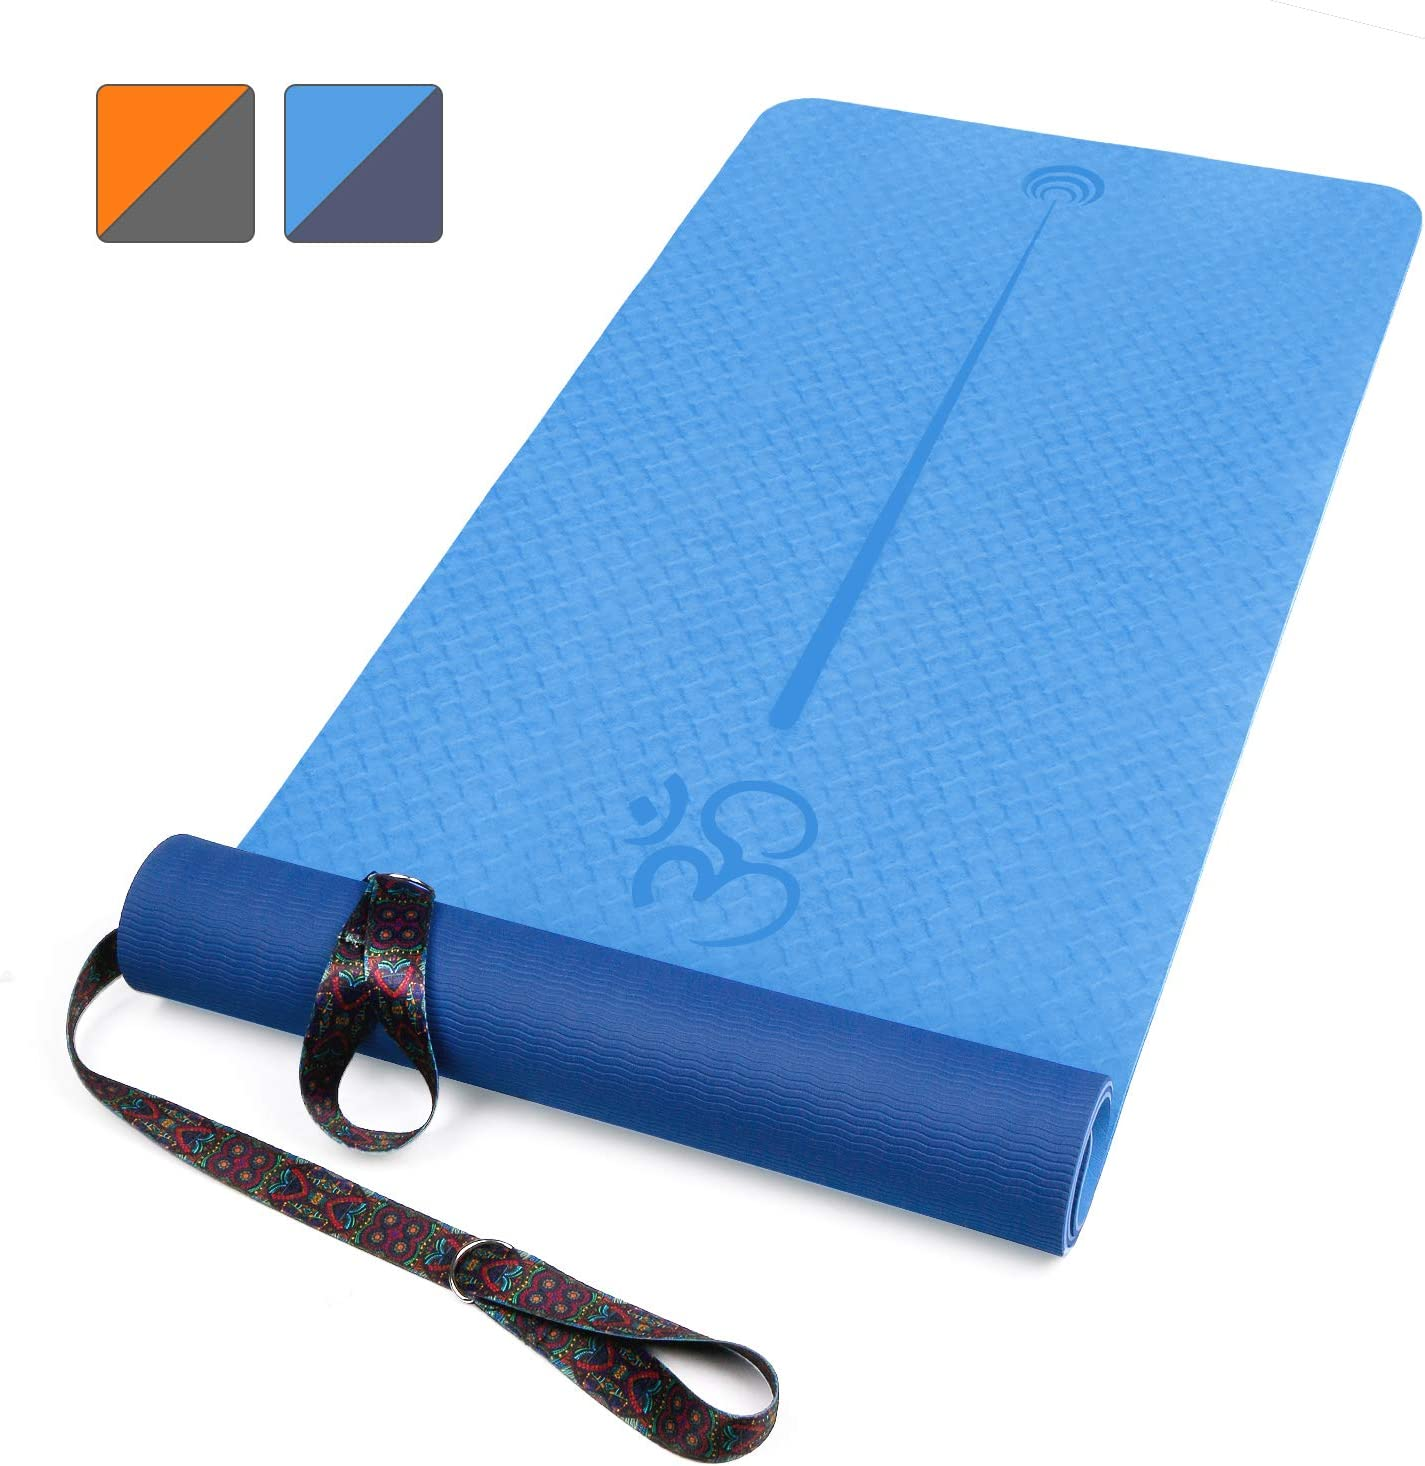 XGEAR Yoga Mat with Carrying Strap - Non-Slip Textured Surface- Eco Friendly TPE Exercise Workout Mat- Exercise & Fitness Mat with Alignment Line for ...